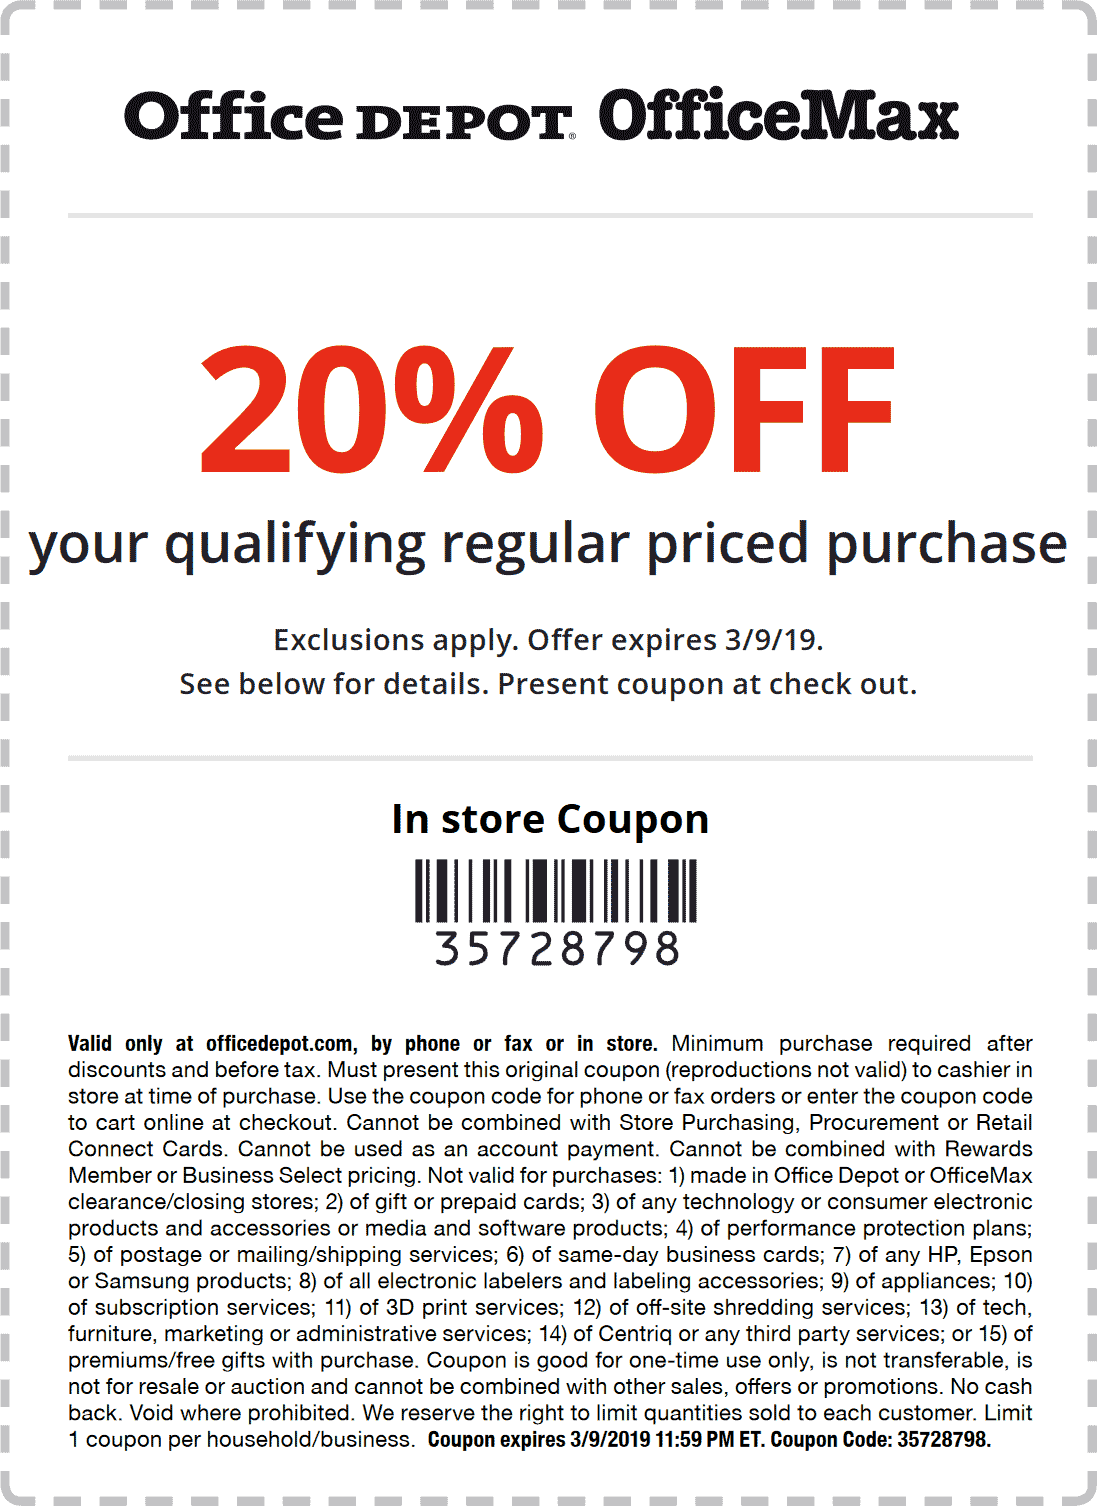 Office Depot Coupon October 2019 20% off at Office Depot & OfficeMax, or online via promo code 35728798